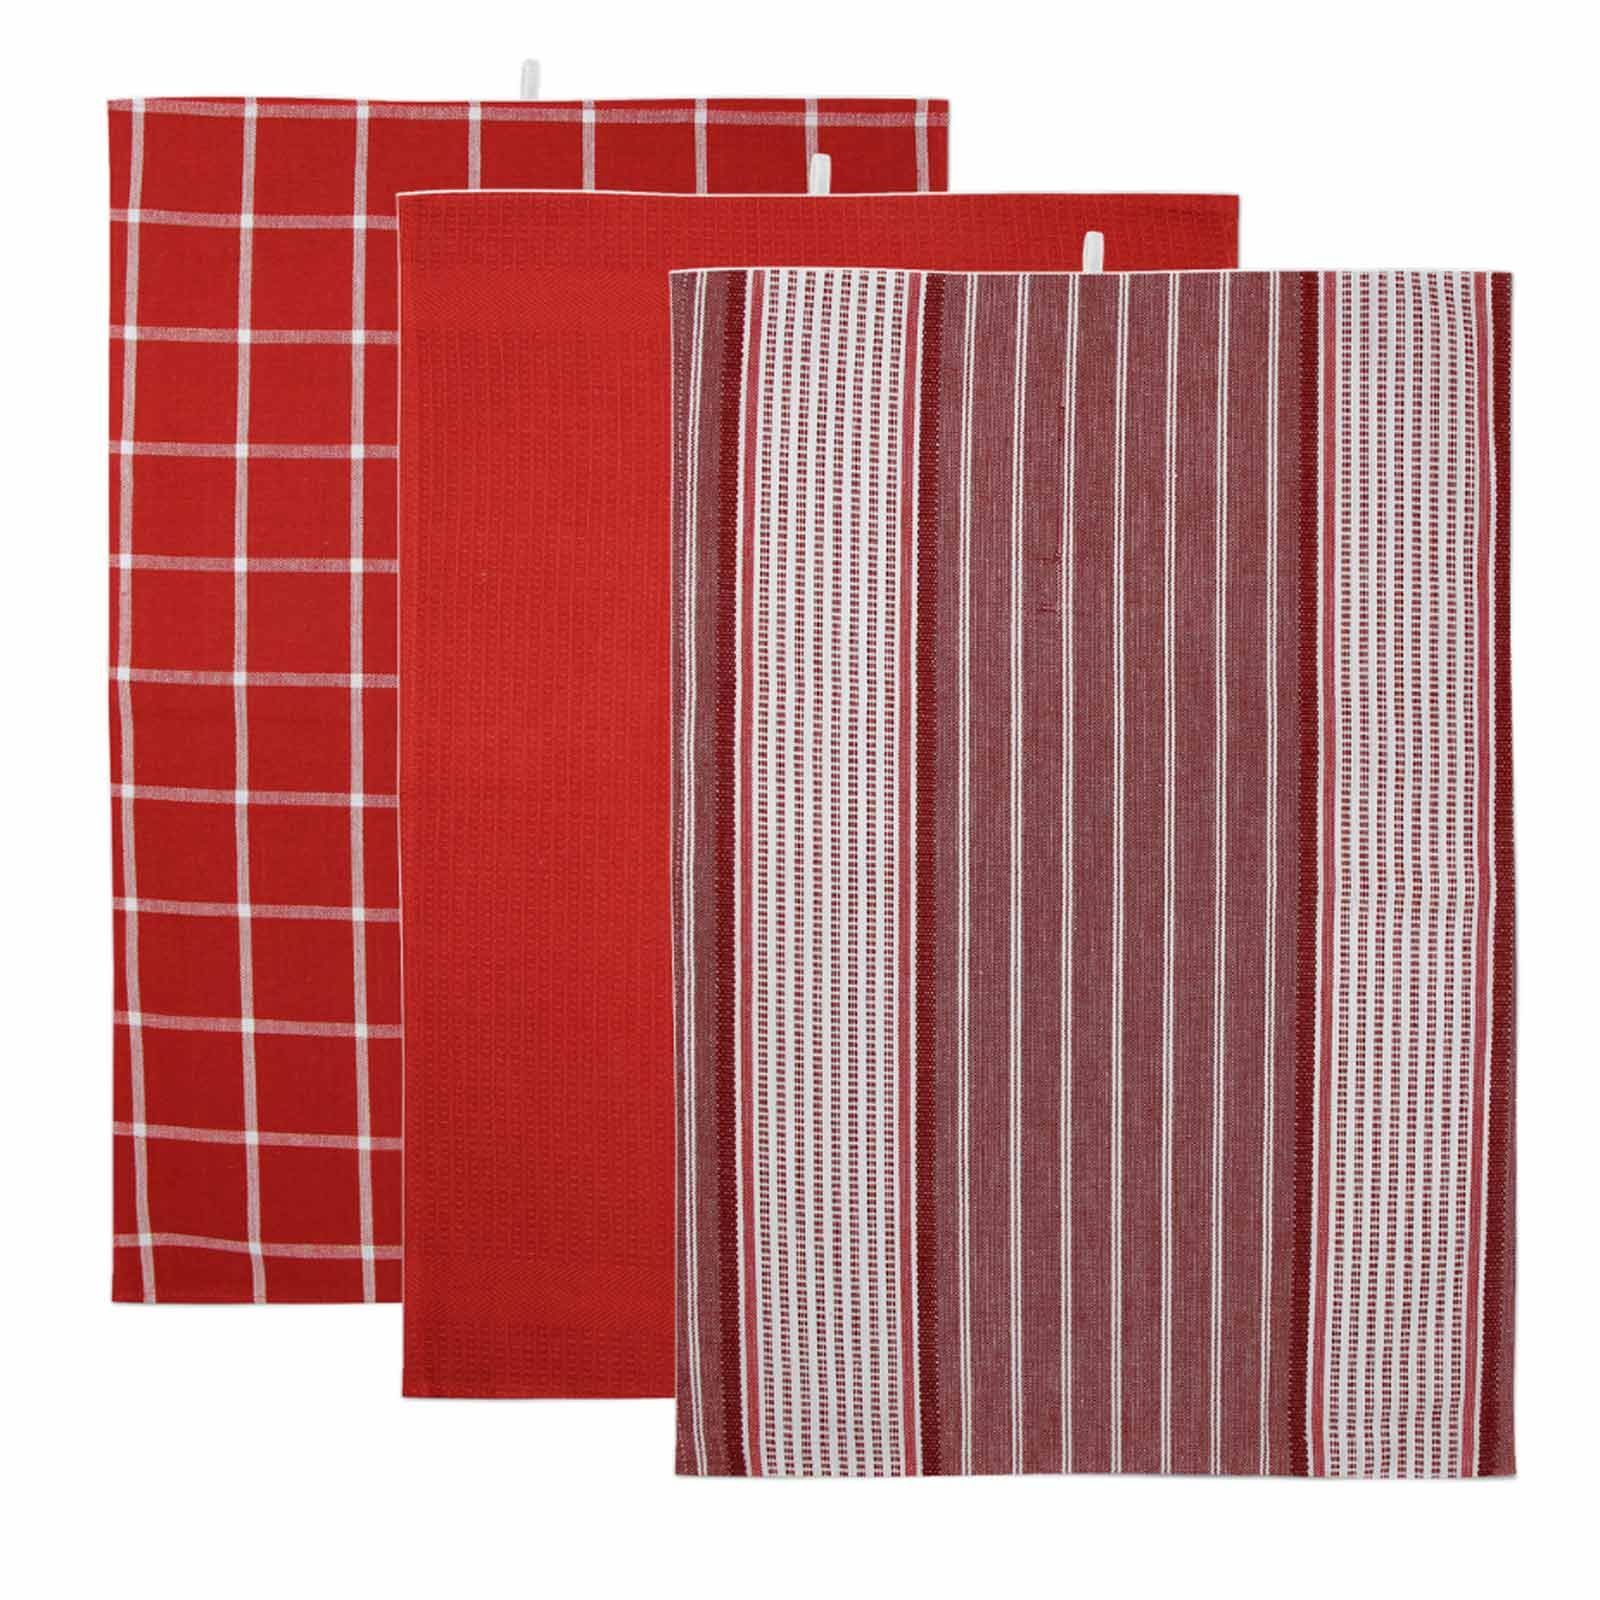 Pack-of-3-Tea-Towels-100-Cotton-Kitchen-Dish-Towel-Drying-Set thumbnail 38